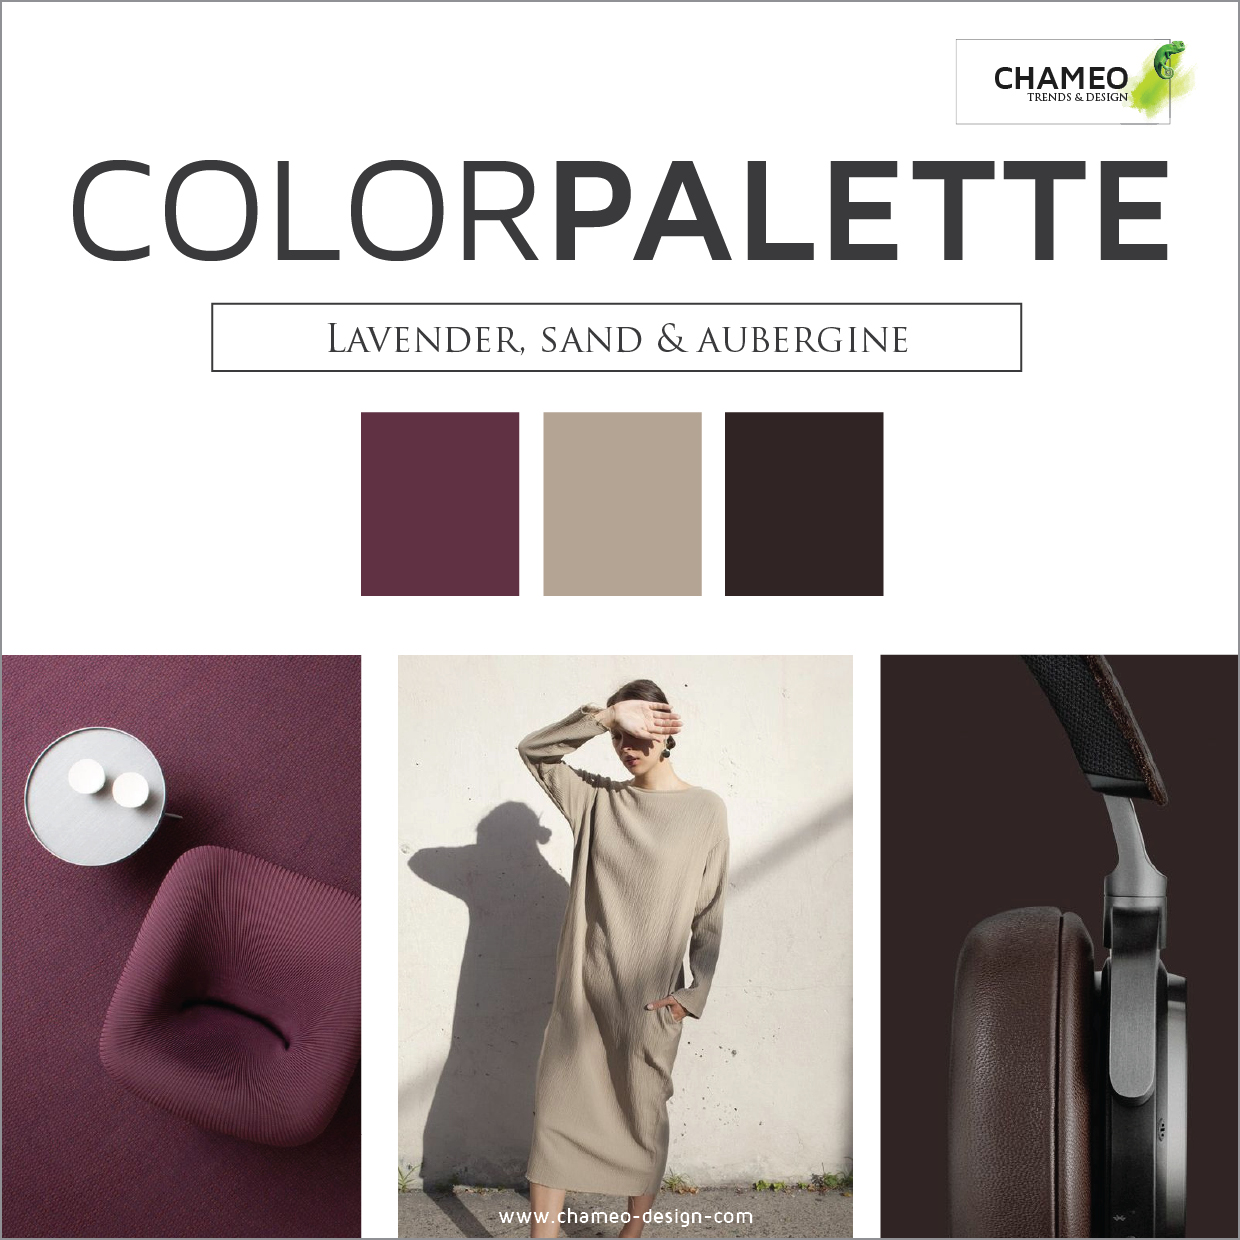 Chameo Design Color palette -CMF Design services